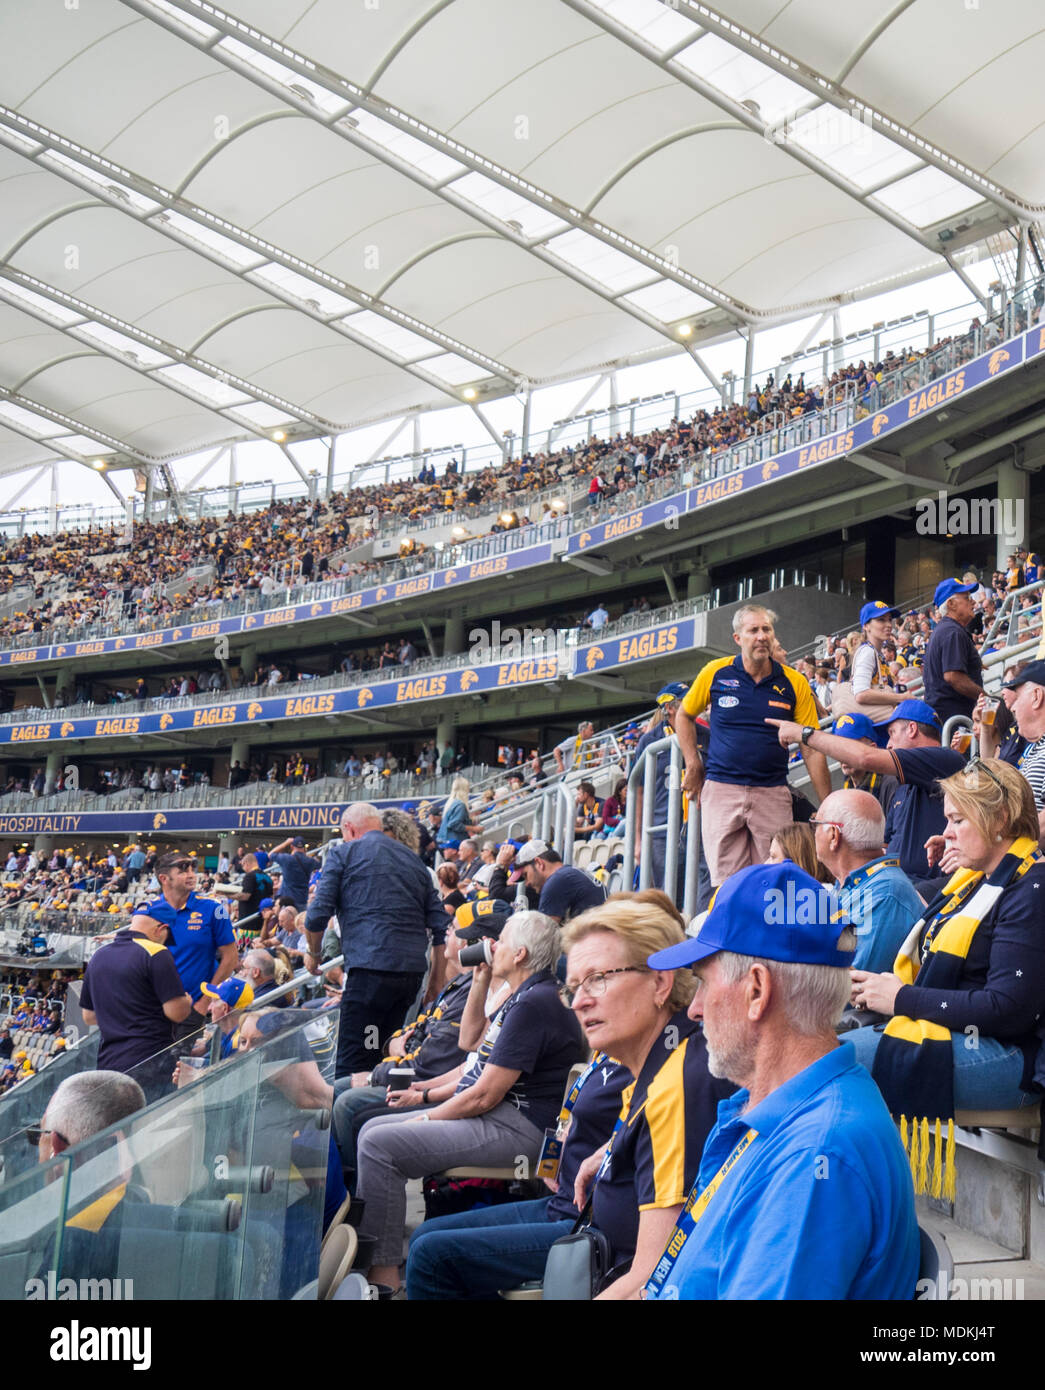 West Coast Eagles supporters seated in the grandstands of the Optus Stadium, Perth, WA, Australia. - Stock Image